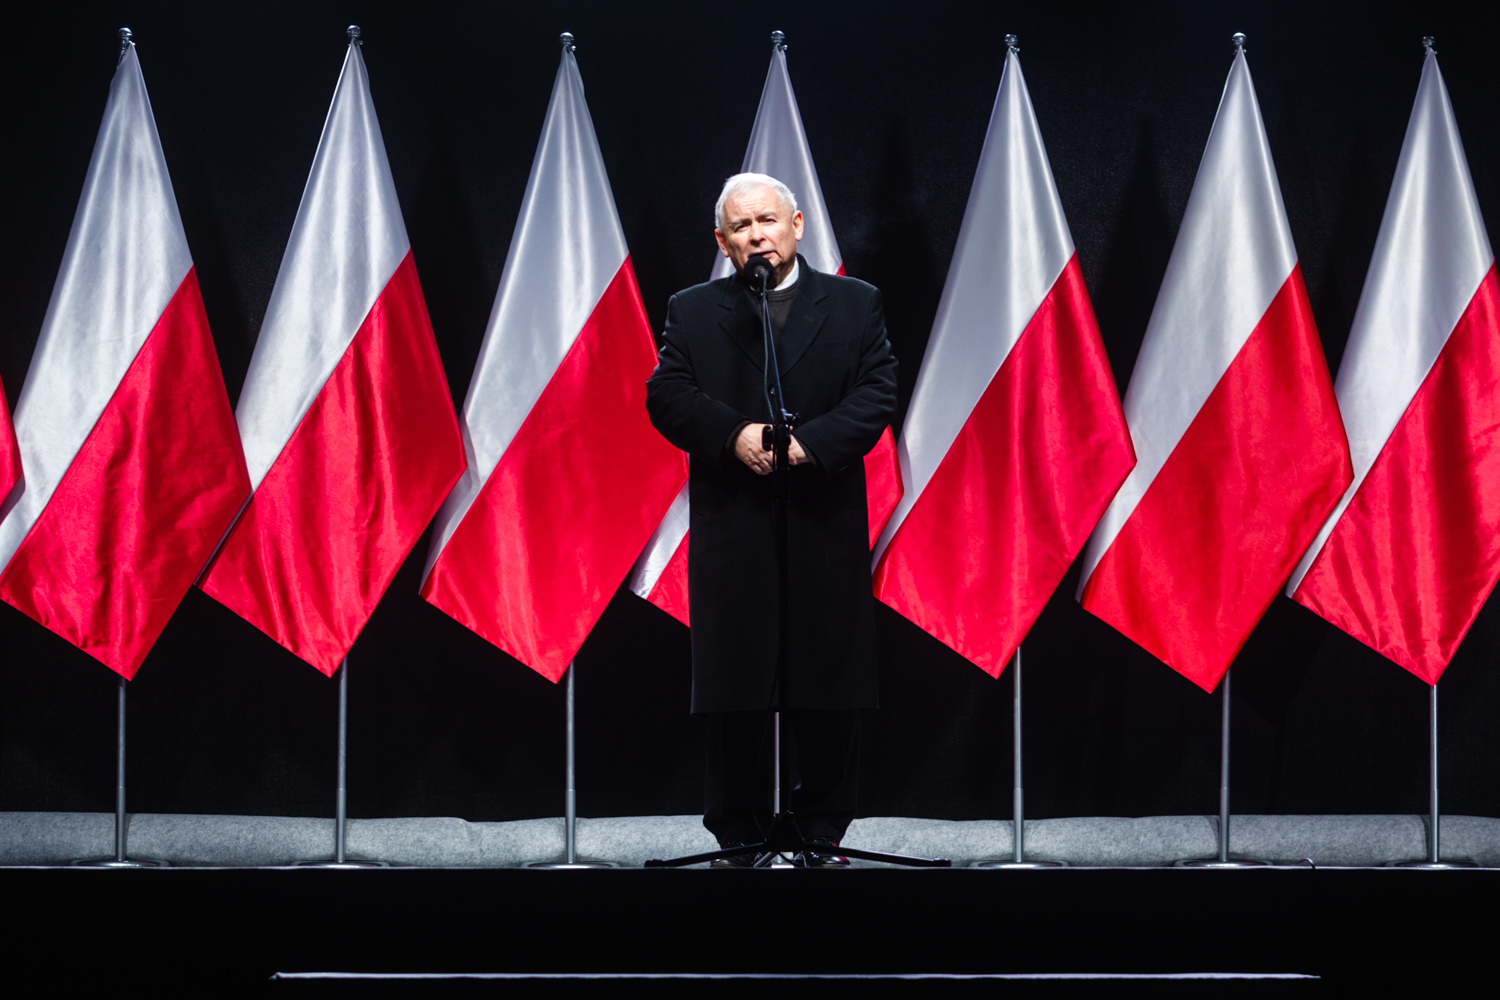 Jaroslaw Kaczynski at unveiling of new monument to his late brother Lech in Warsaw on 10 November